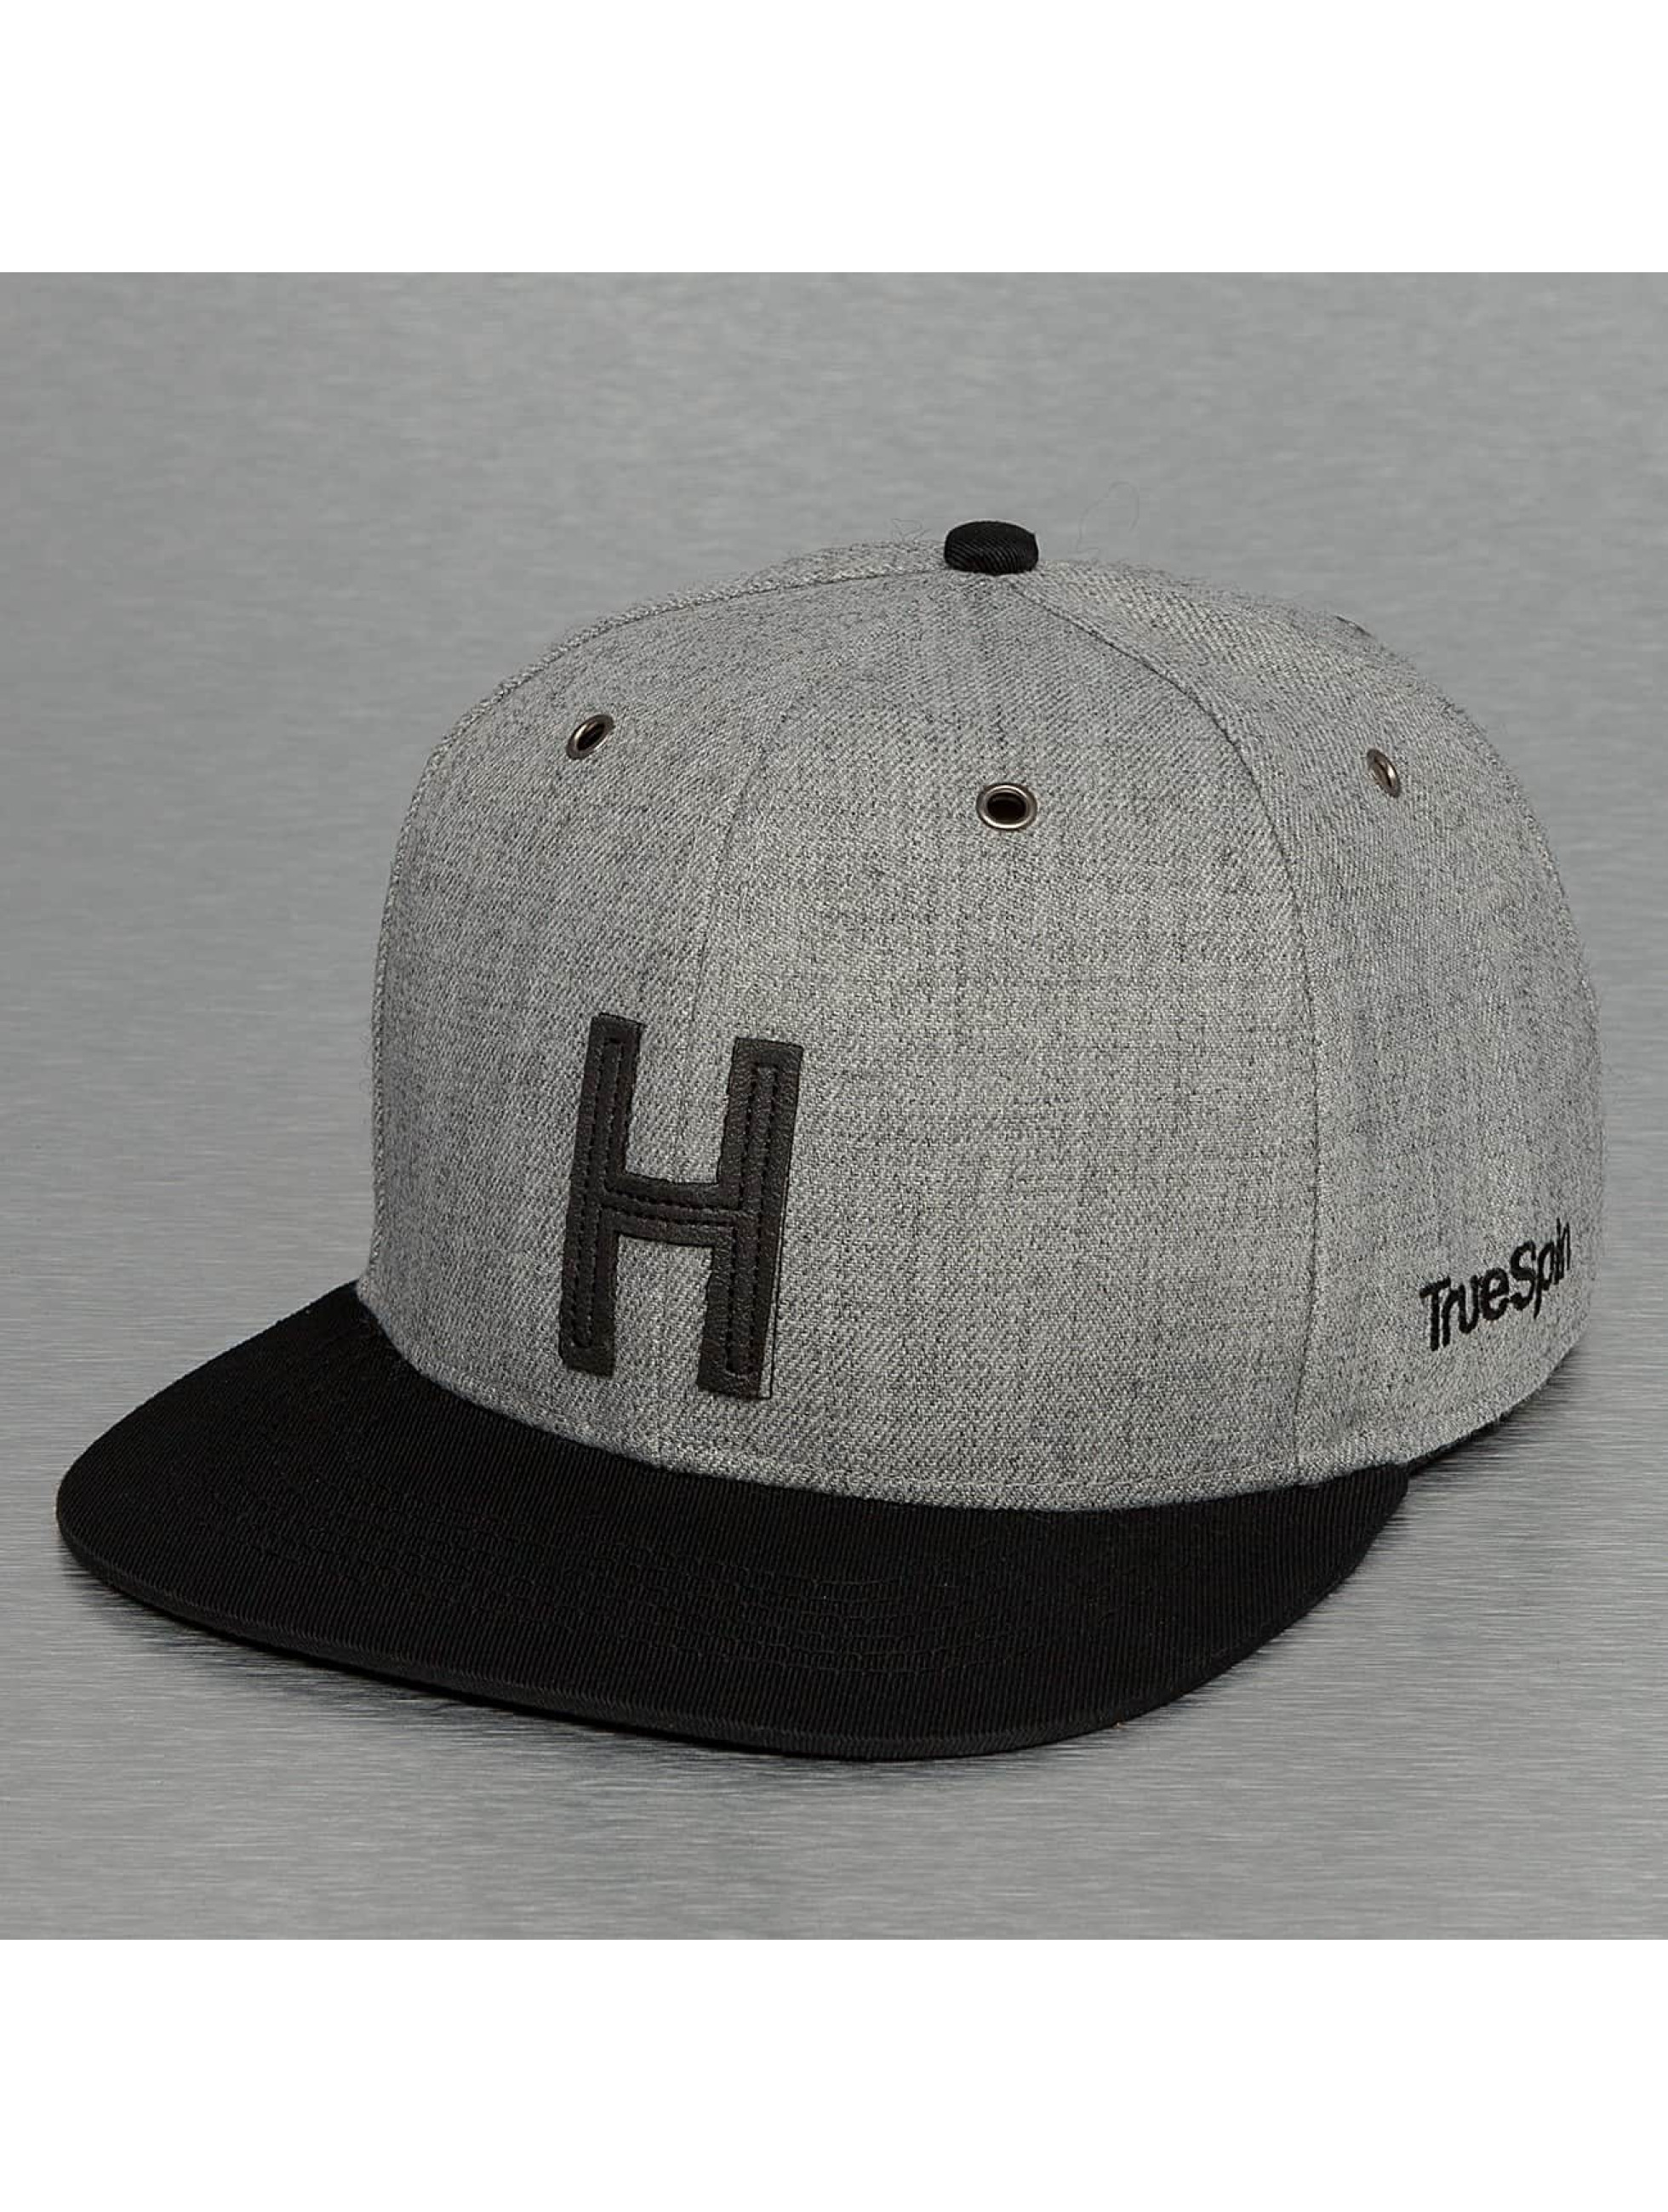 TrueSpin Casquette Snapback & Strapback ABC-H Wool gris